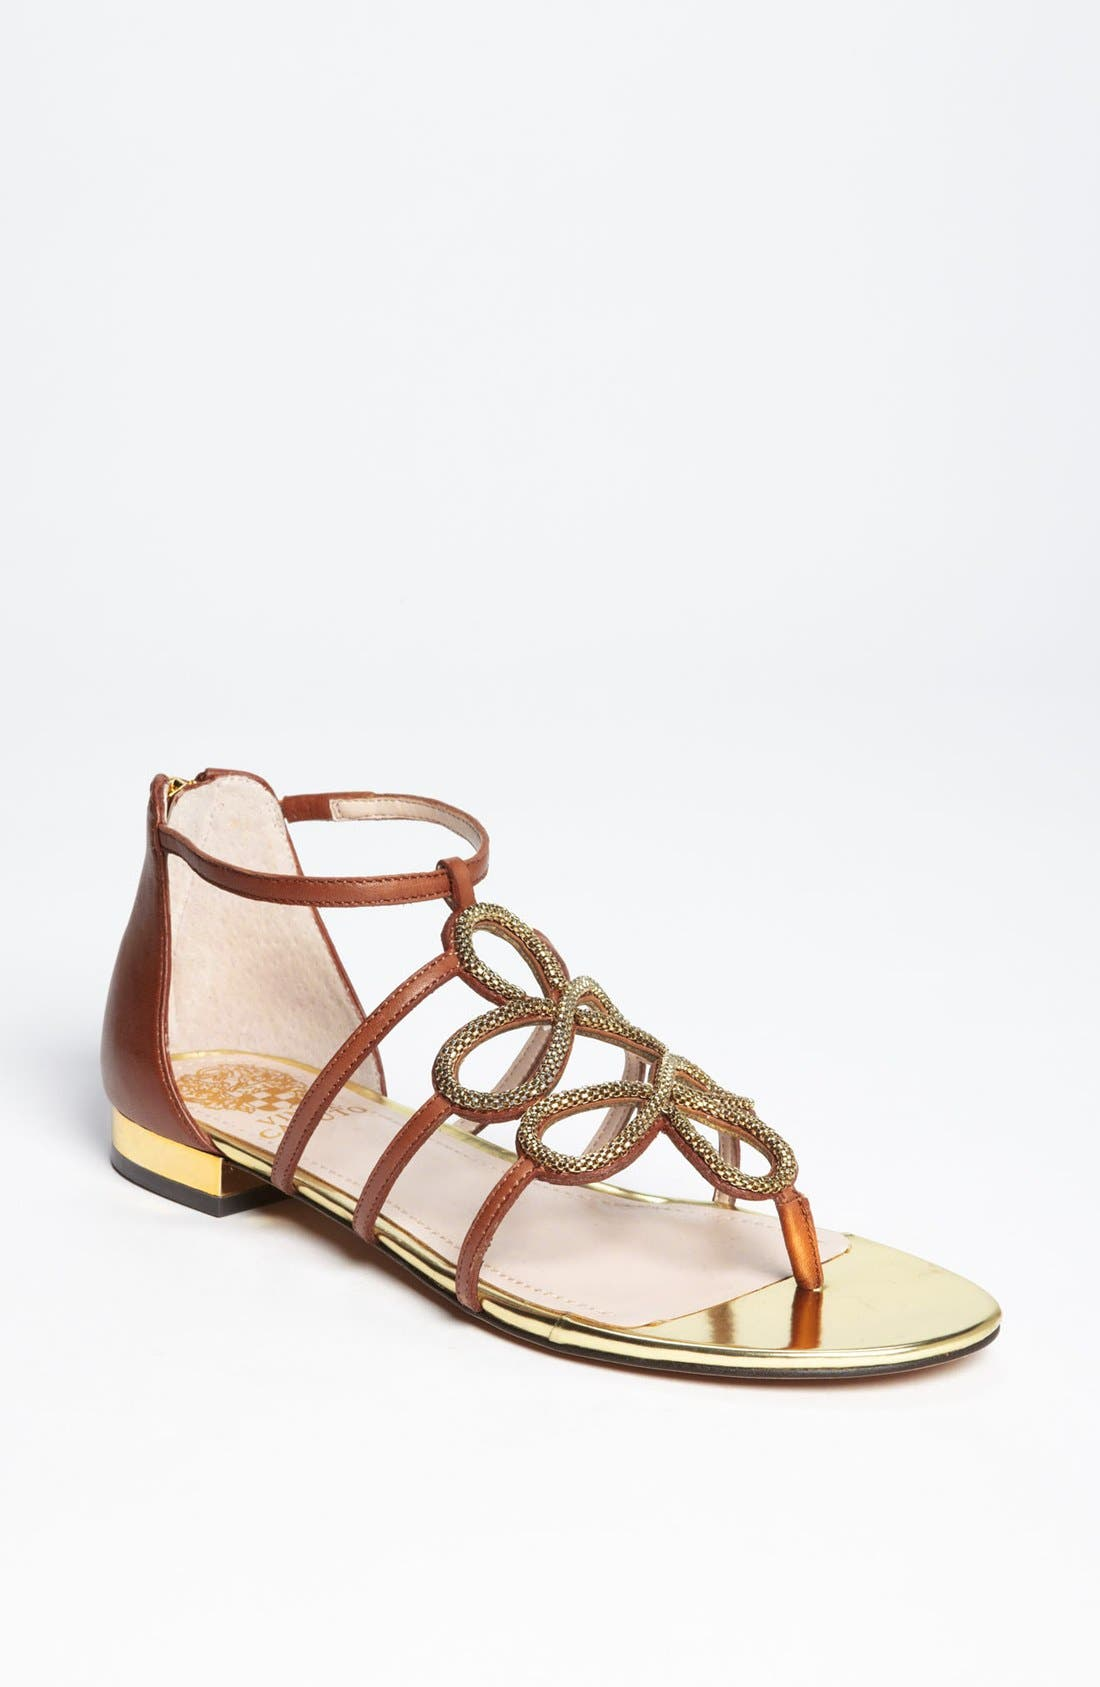 Alternate Image 1 Selected - Vince Camuto 'Harissa' Sandal (Nordstrom Exclusive)